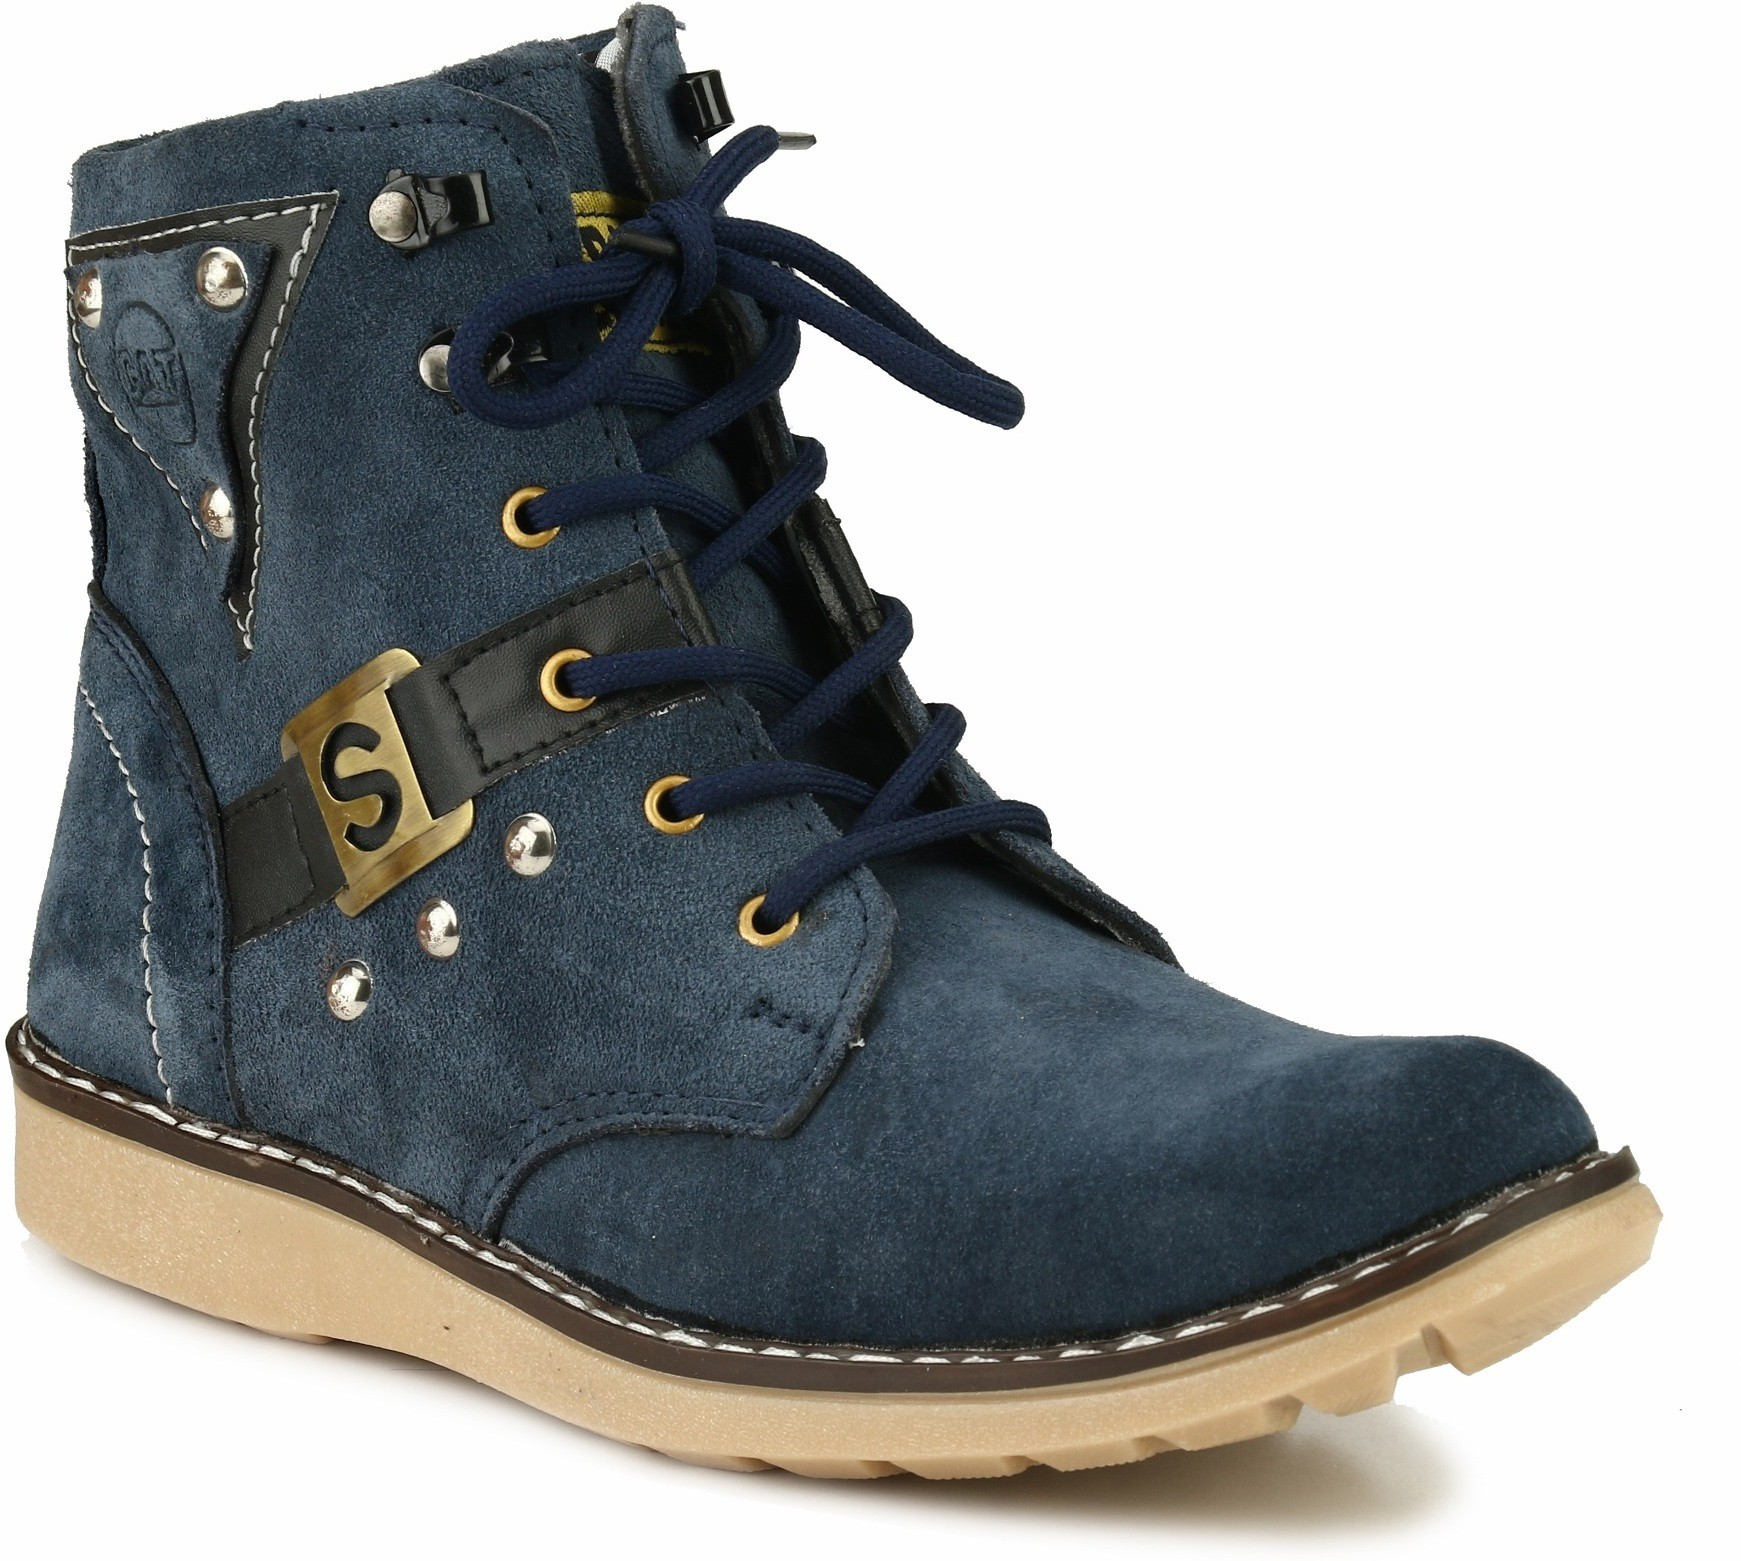 Mactree Mountaineer Boots(Blue)